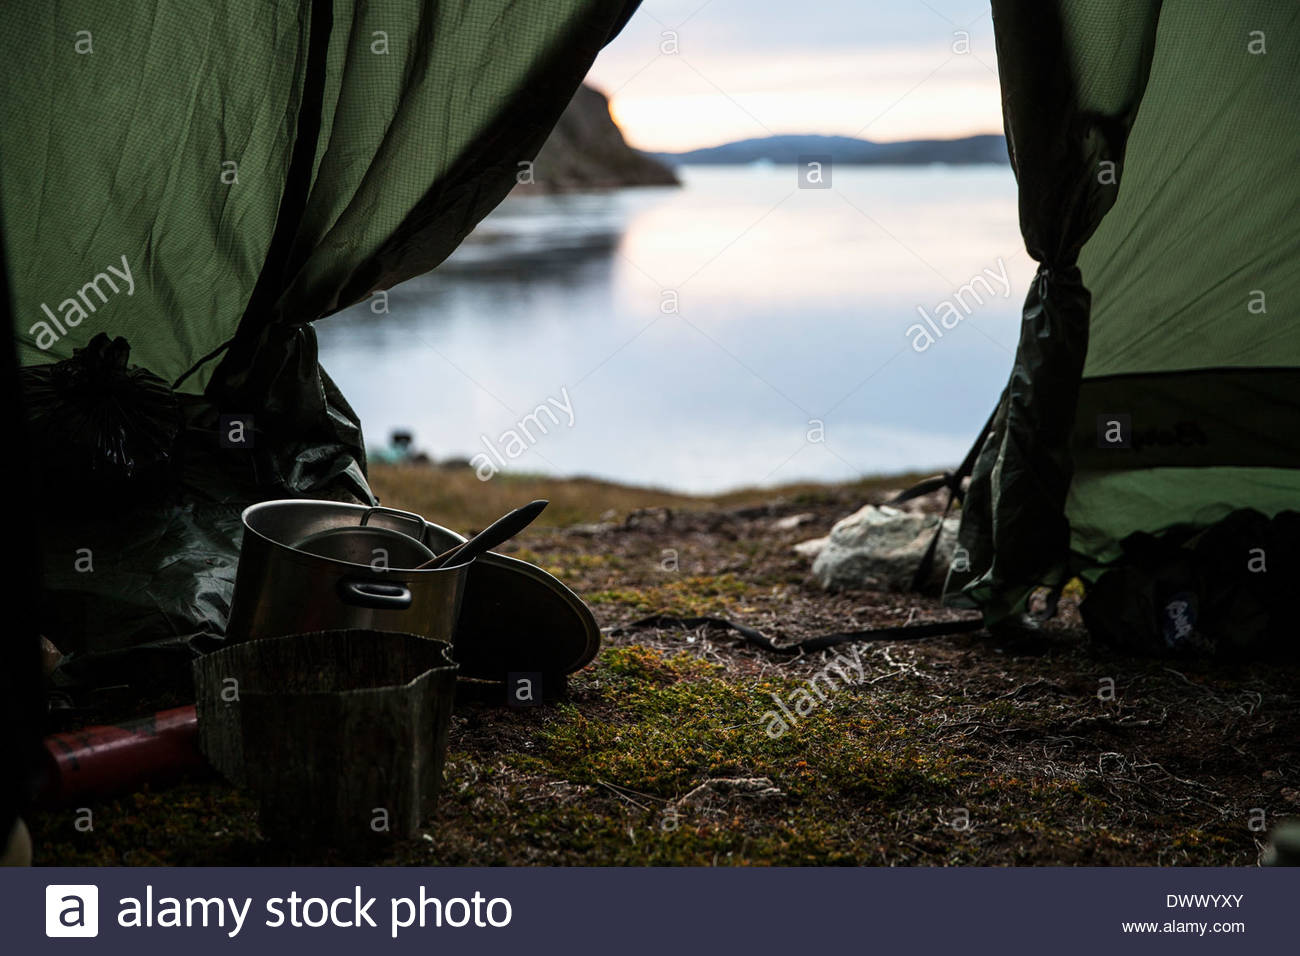 Kitchen utensil in tent at lakeshore - Stock Image